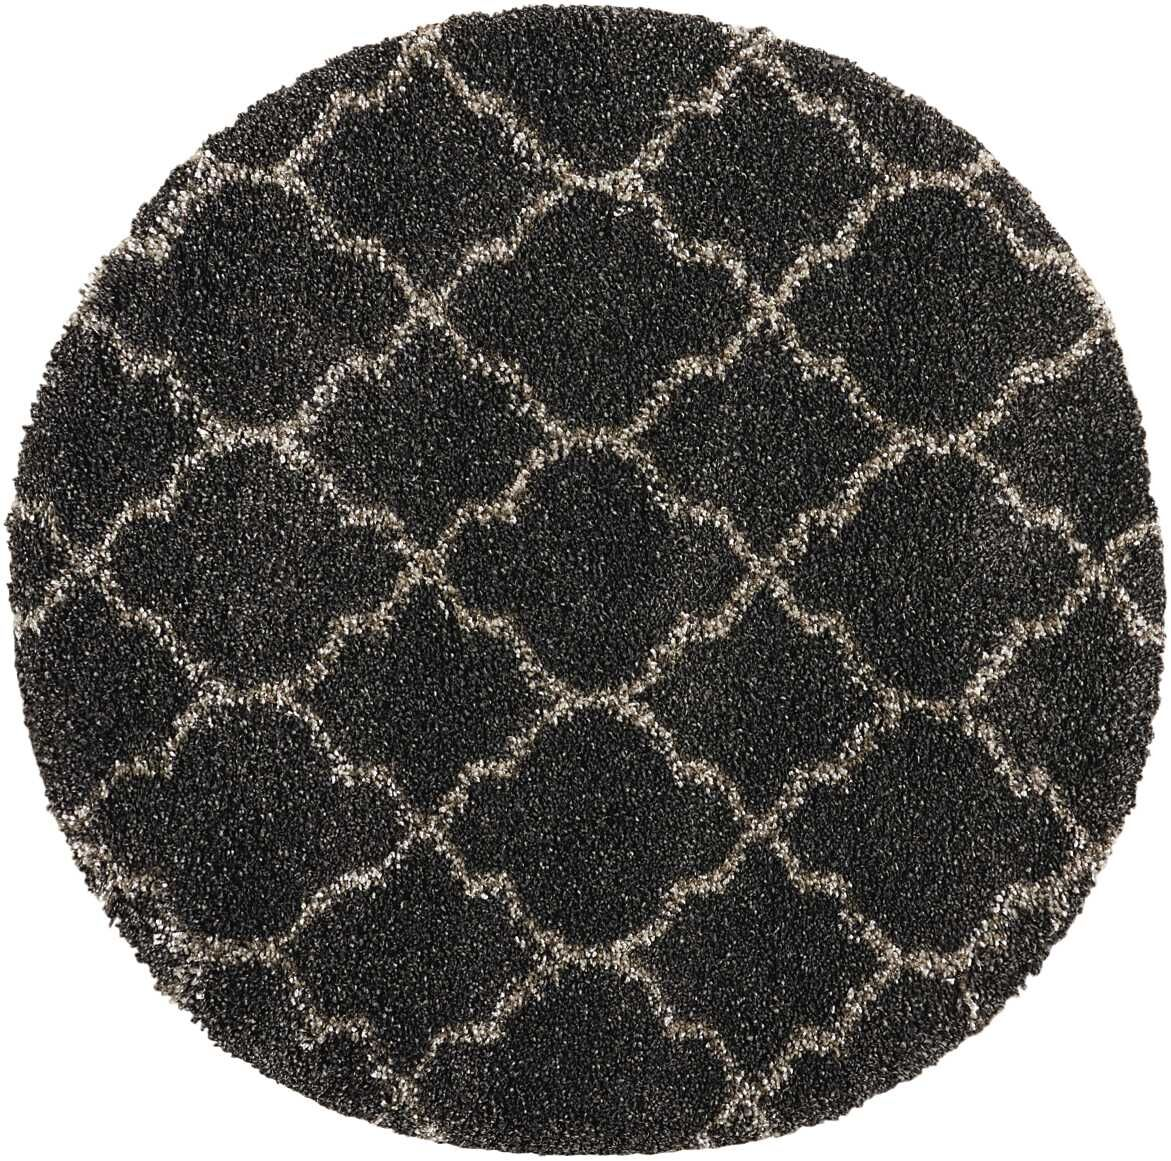 Linton Charcoal Area Rug Rug Size: Round 7'10